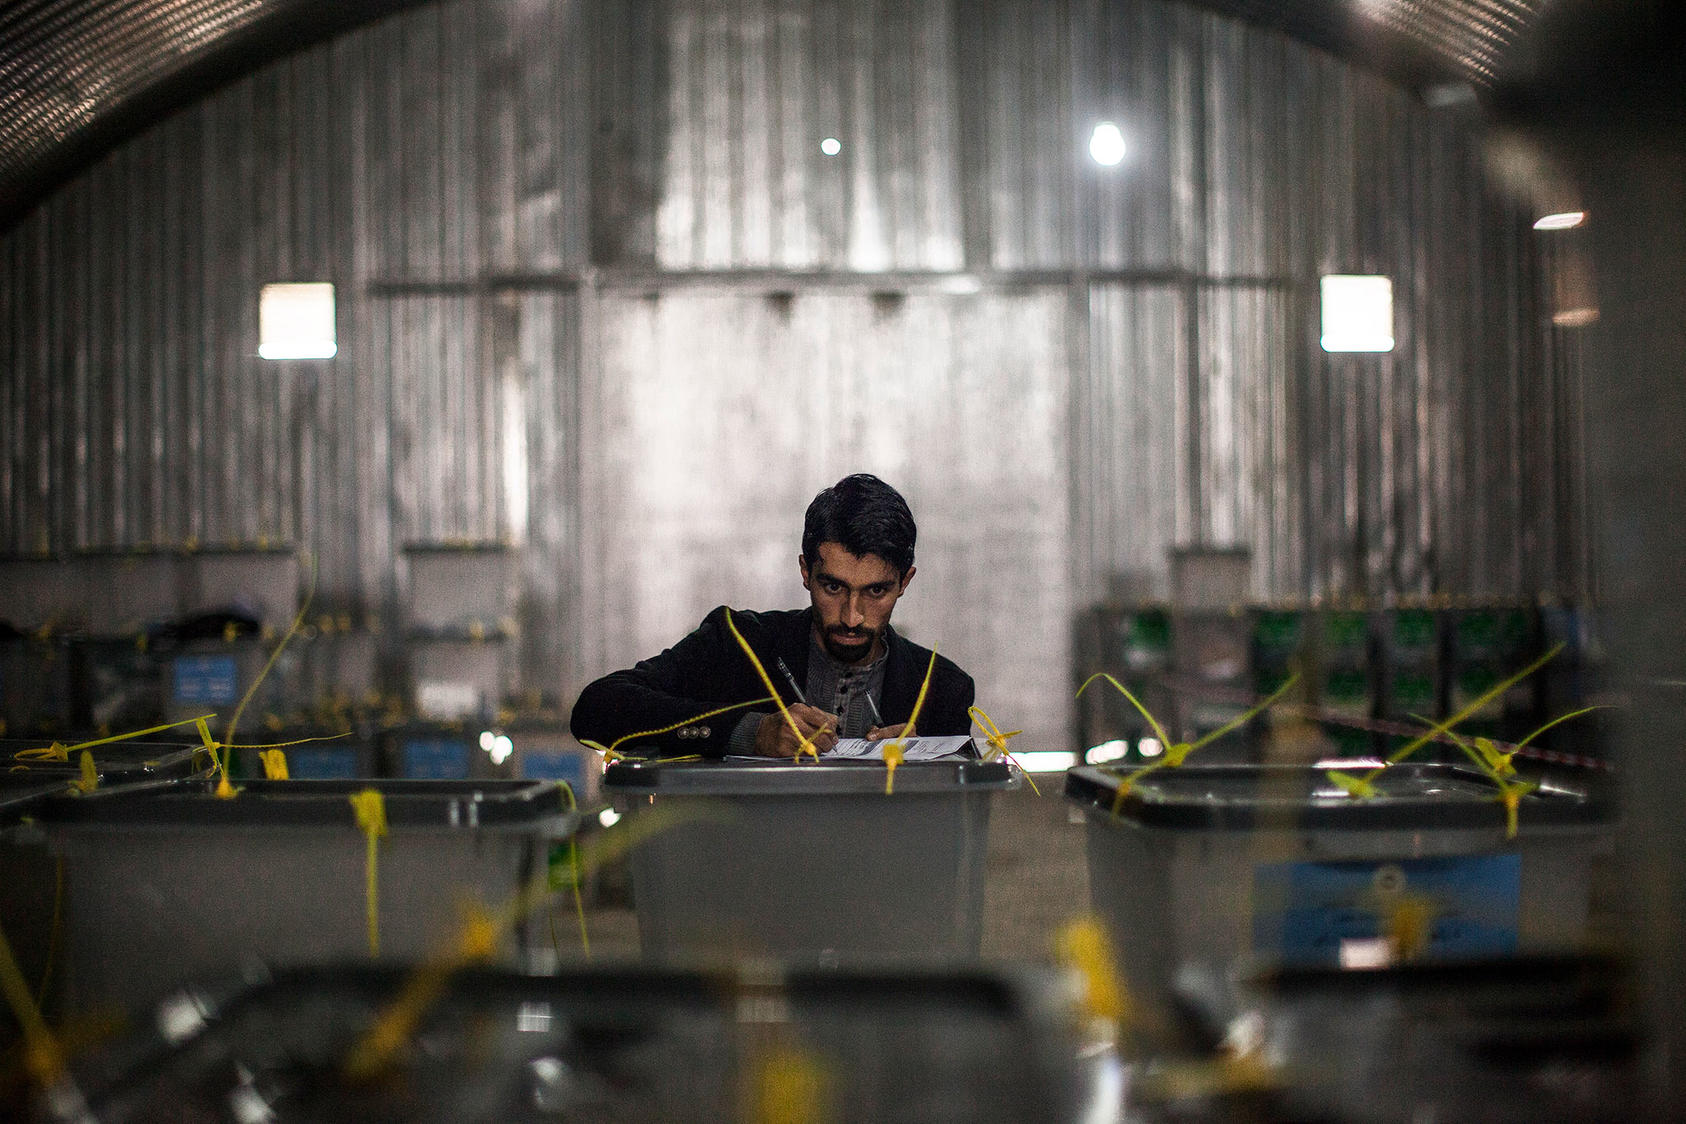 A man working for the Afghan Independent Election Commission inventories ballot boxes at IEC headquarters in Kabul